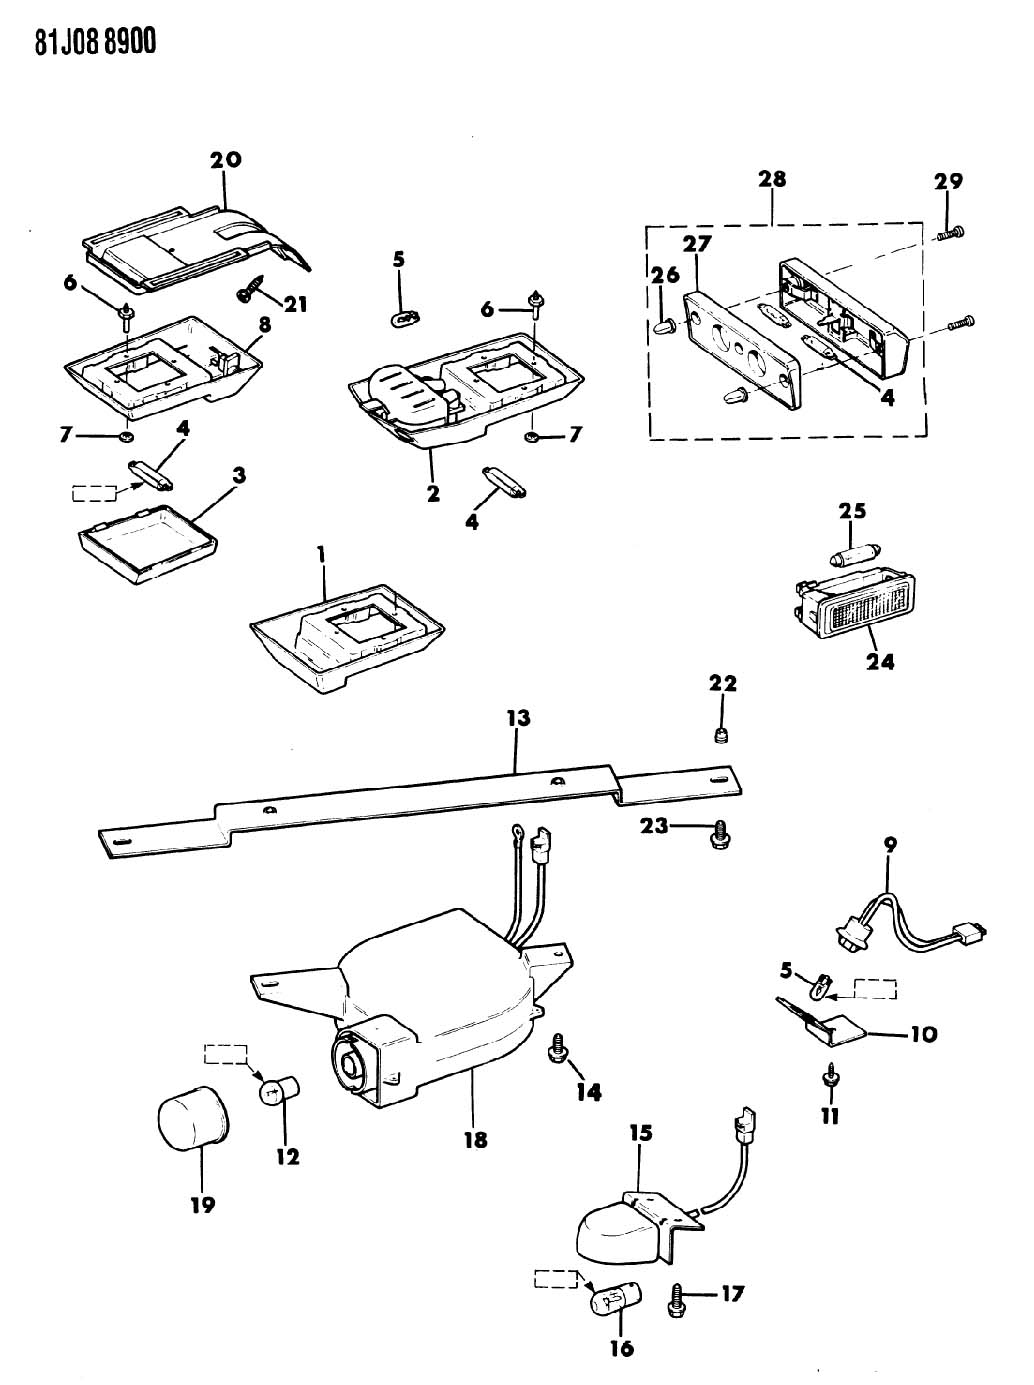 91 jeep comanche vacuum diagram